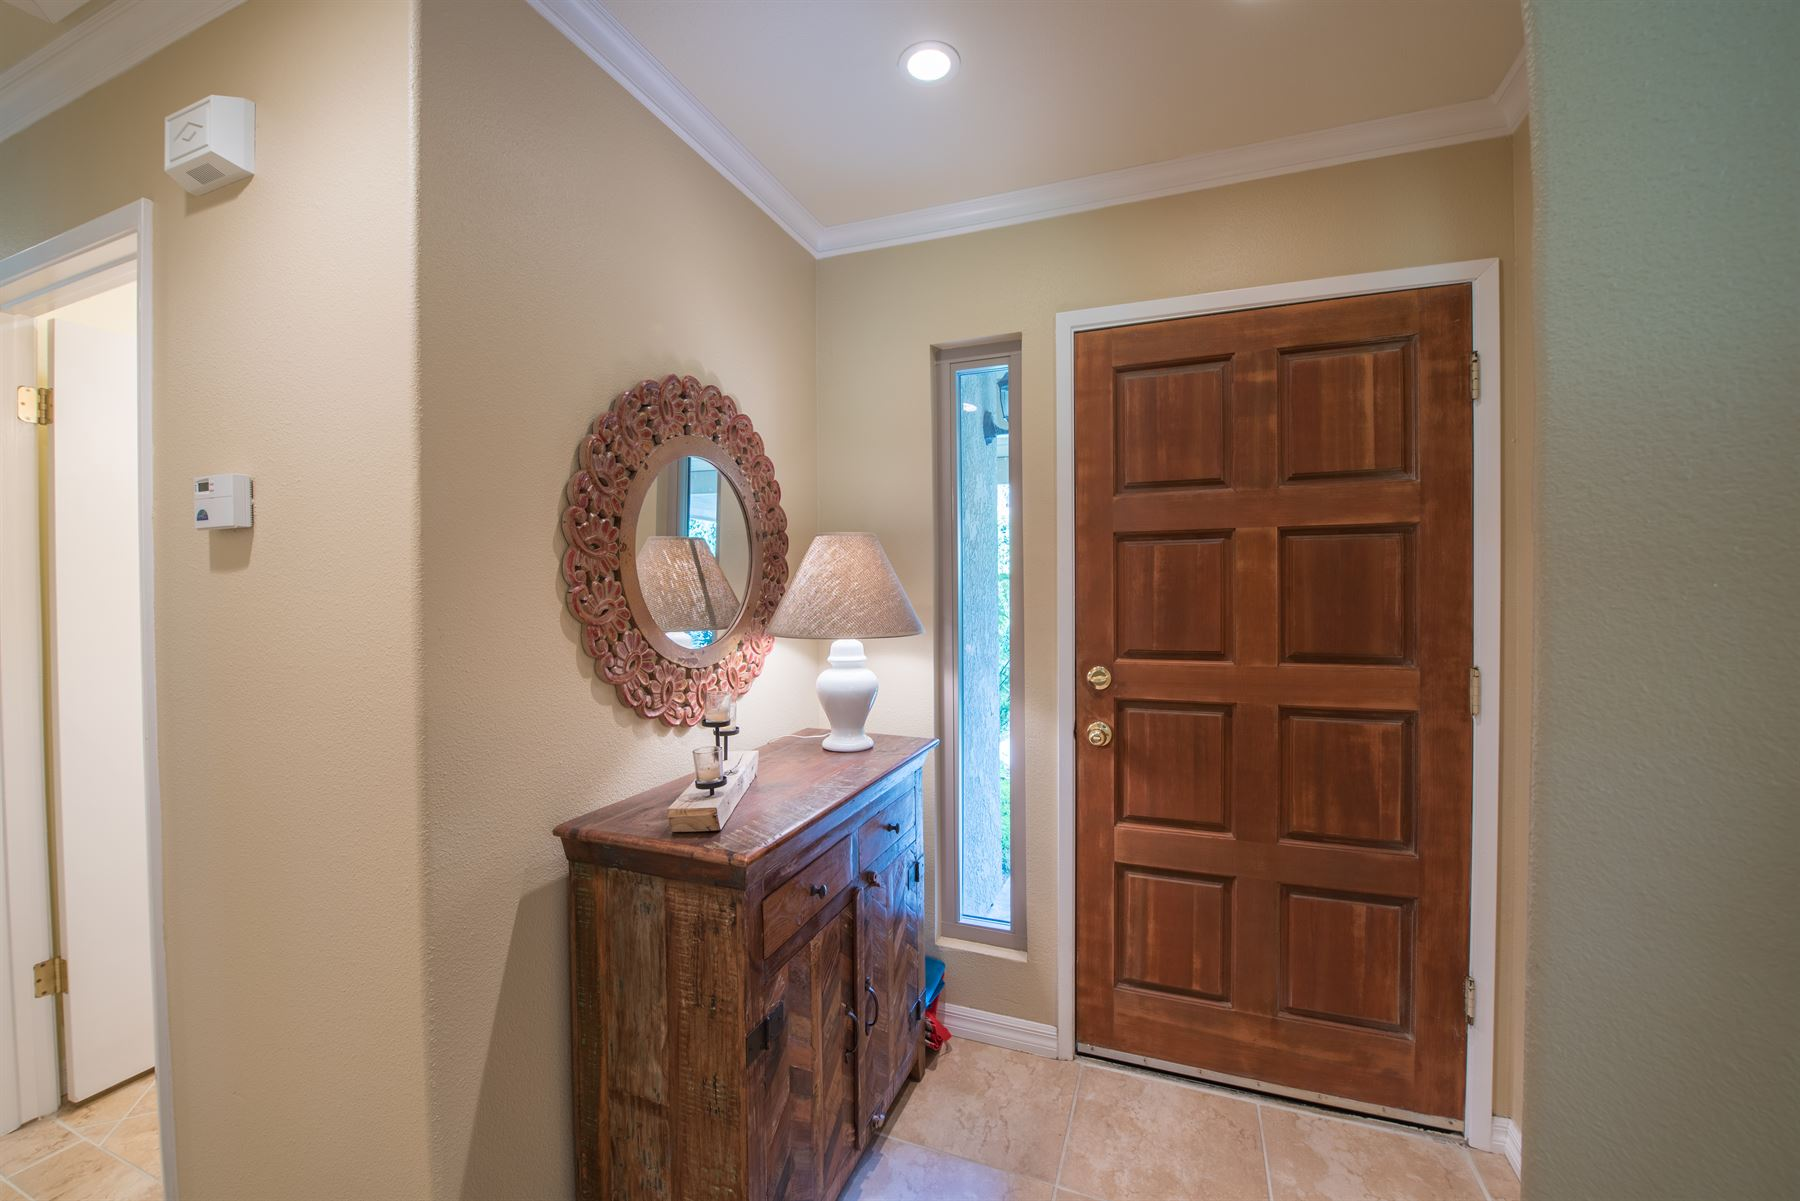 Golfer's Getaway - Interior - View of front door and entryway